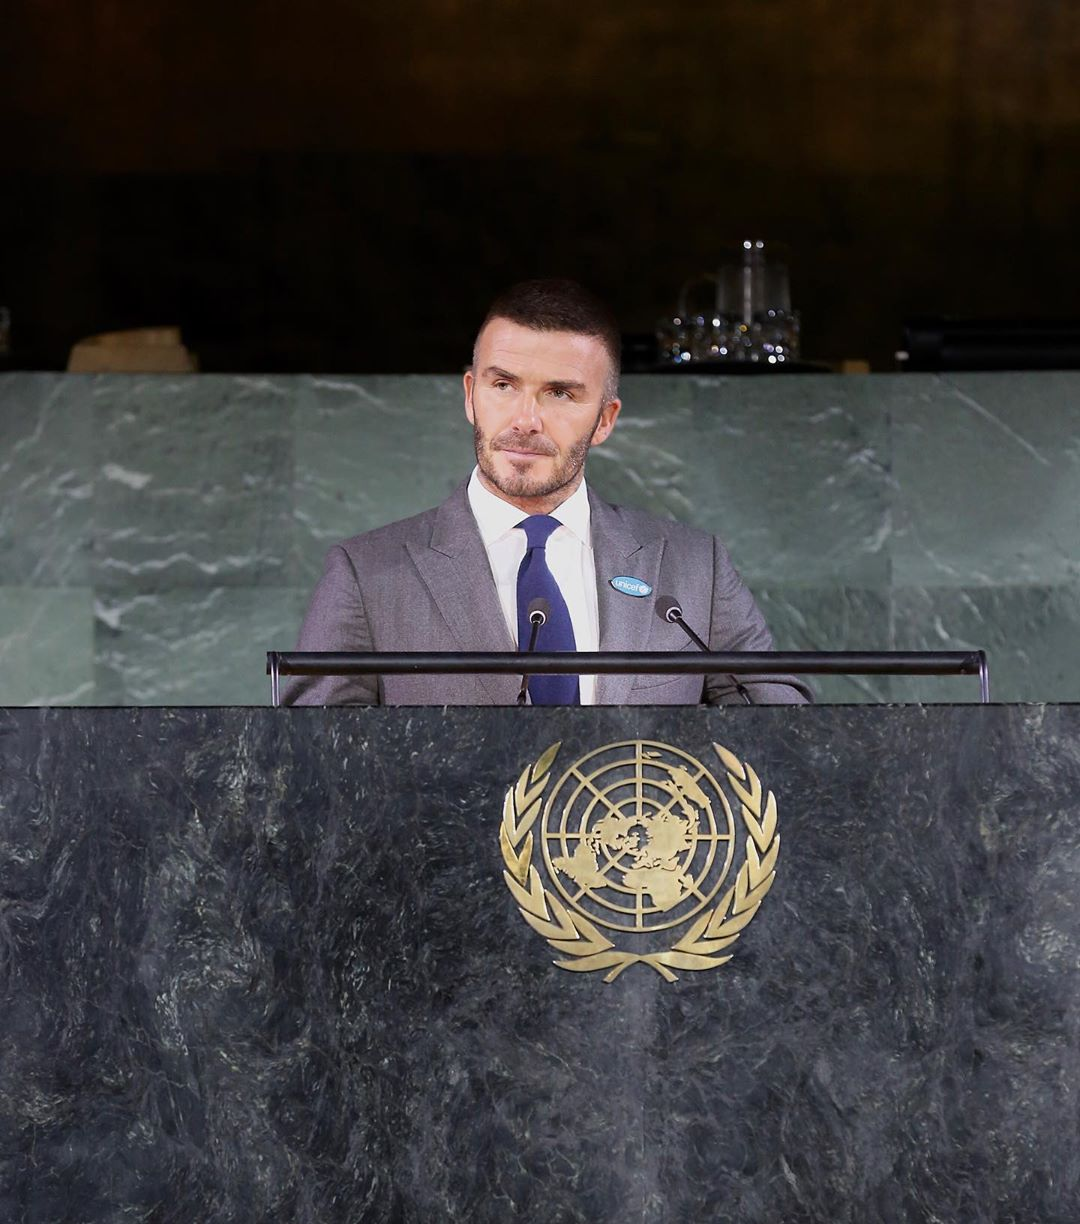 David Beckham Instagram: Girls and boys are speaking up, demanding their rights and leading the way. I am...